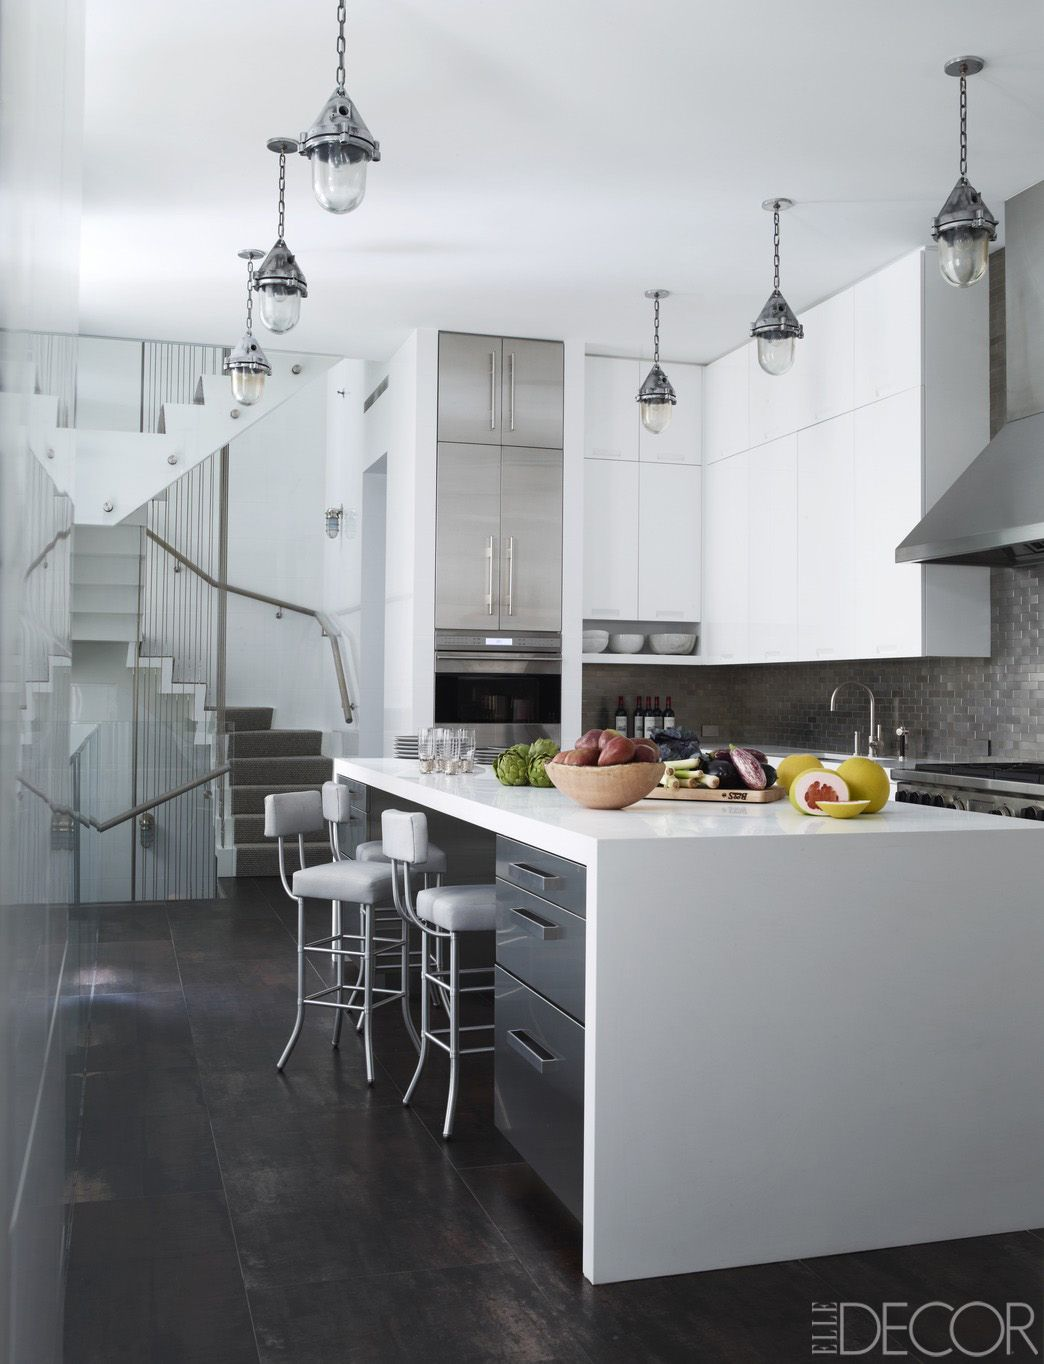 white kitchens to inspire your next remodel kitchen ideas